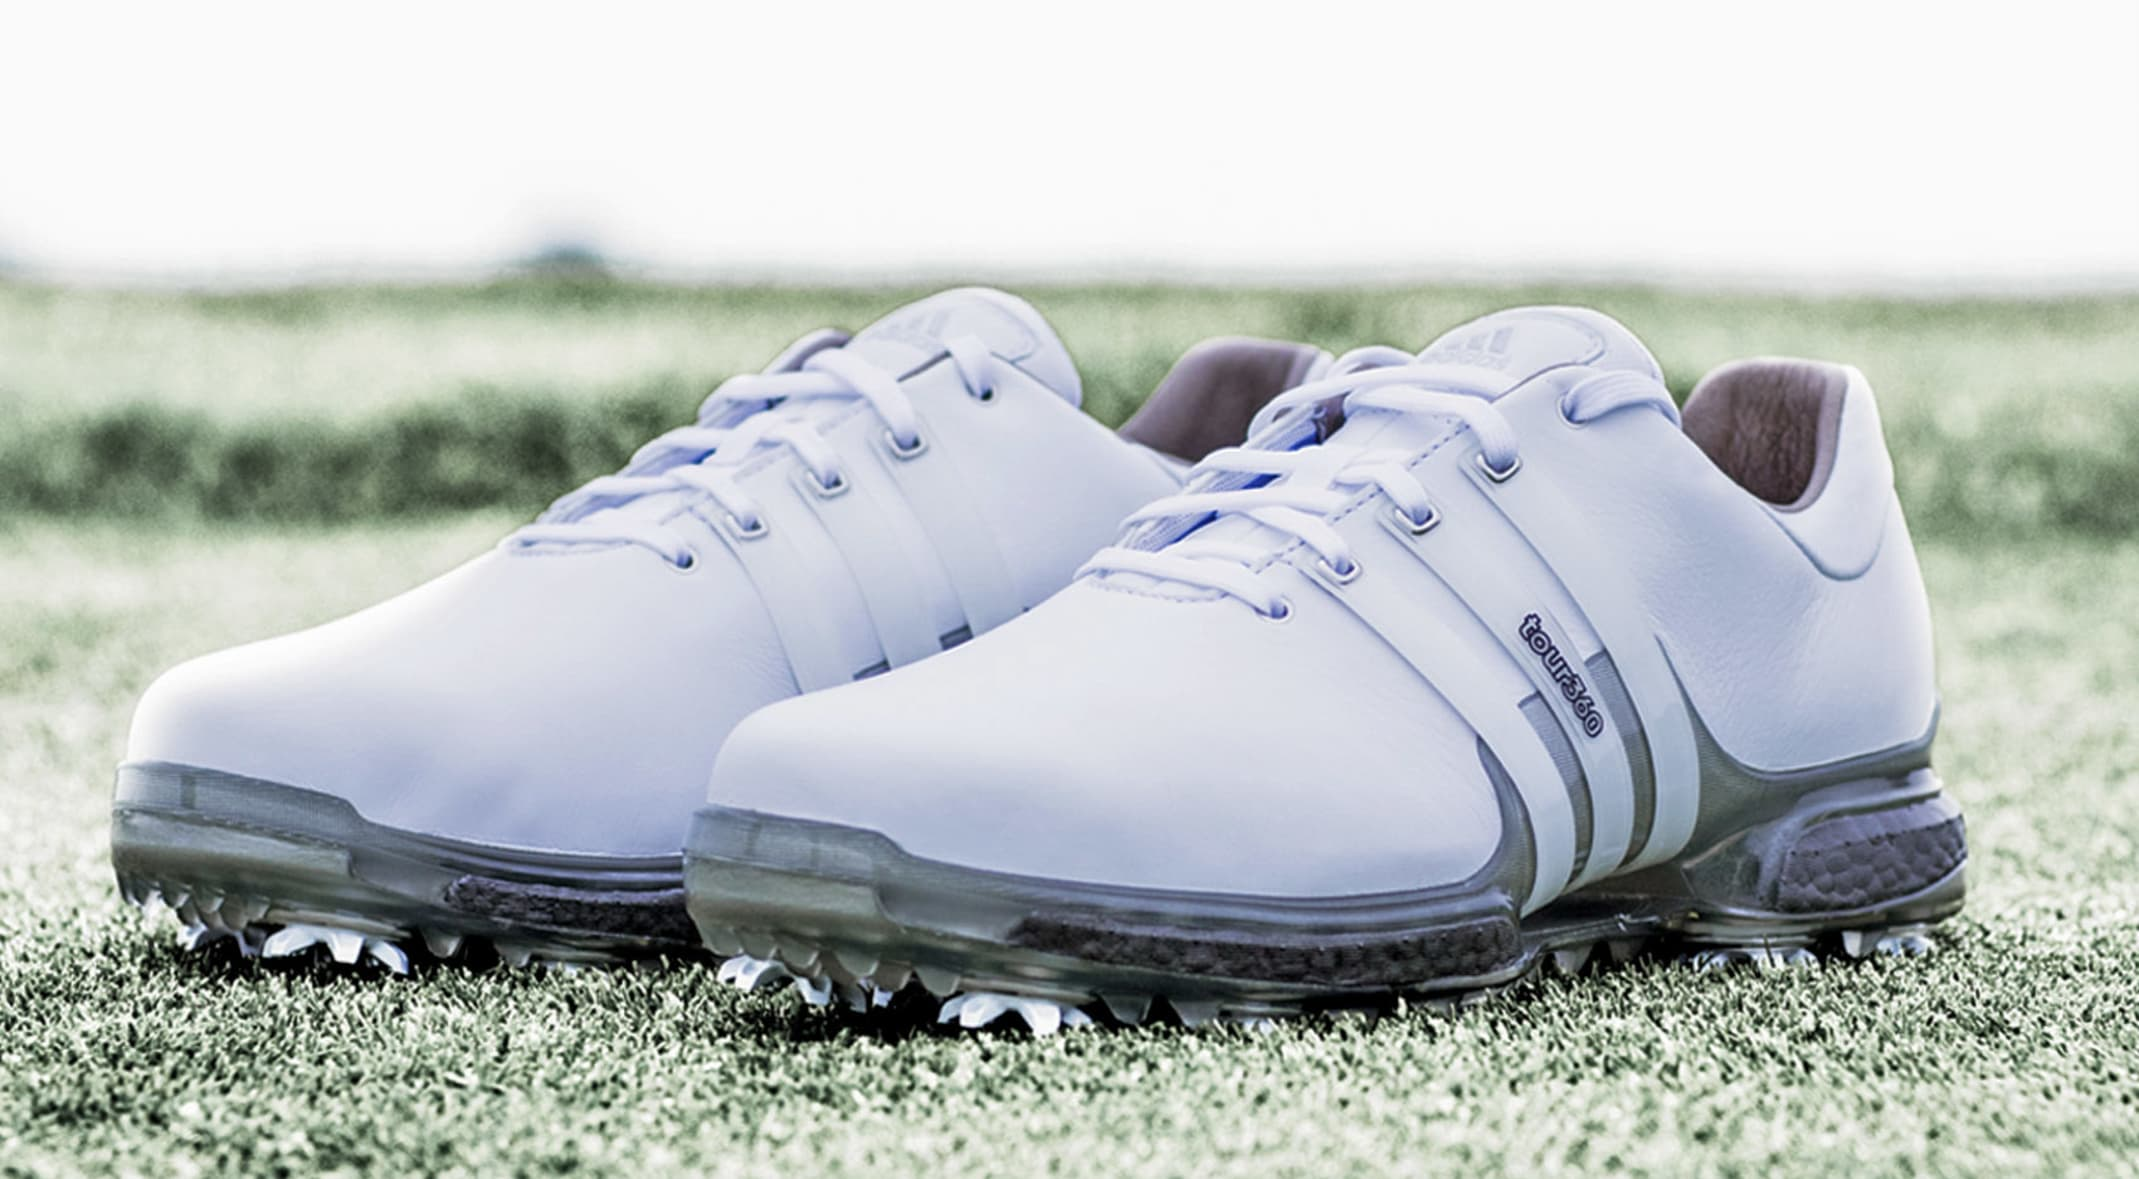 separation shoes c06c4 a8f93 Adidas Golf unveiled three Special Edition Silver BOOST sneakers, including  the TOUR360 shown here,